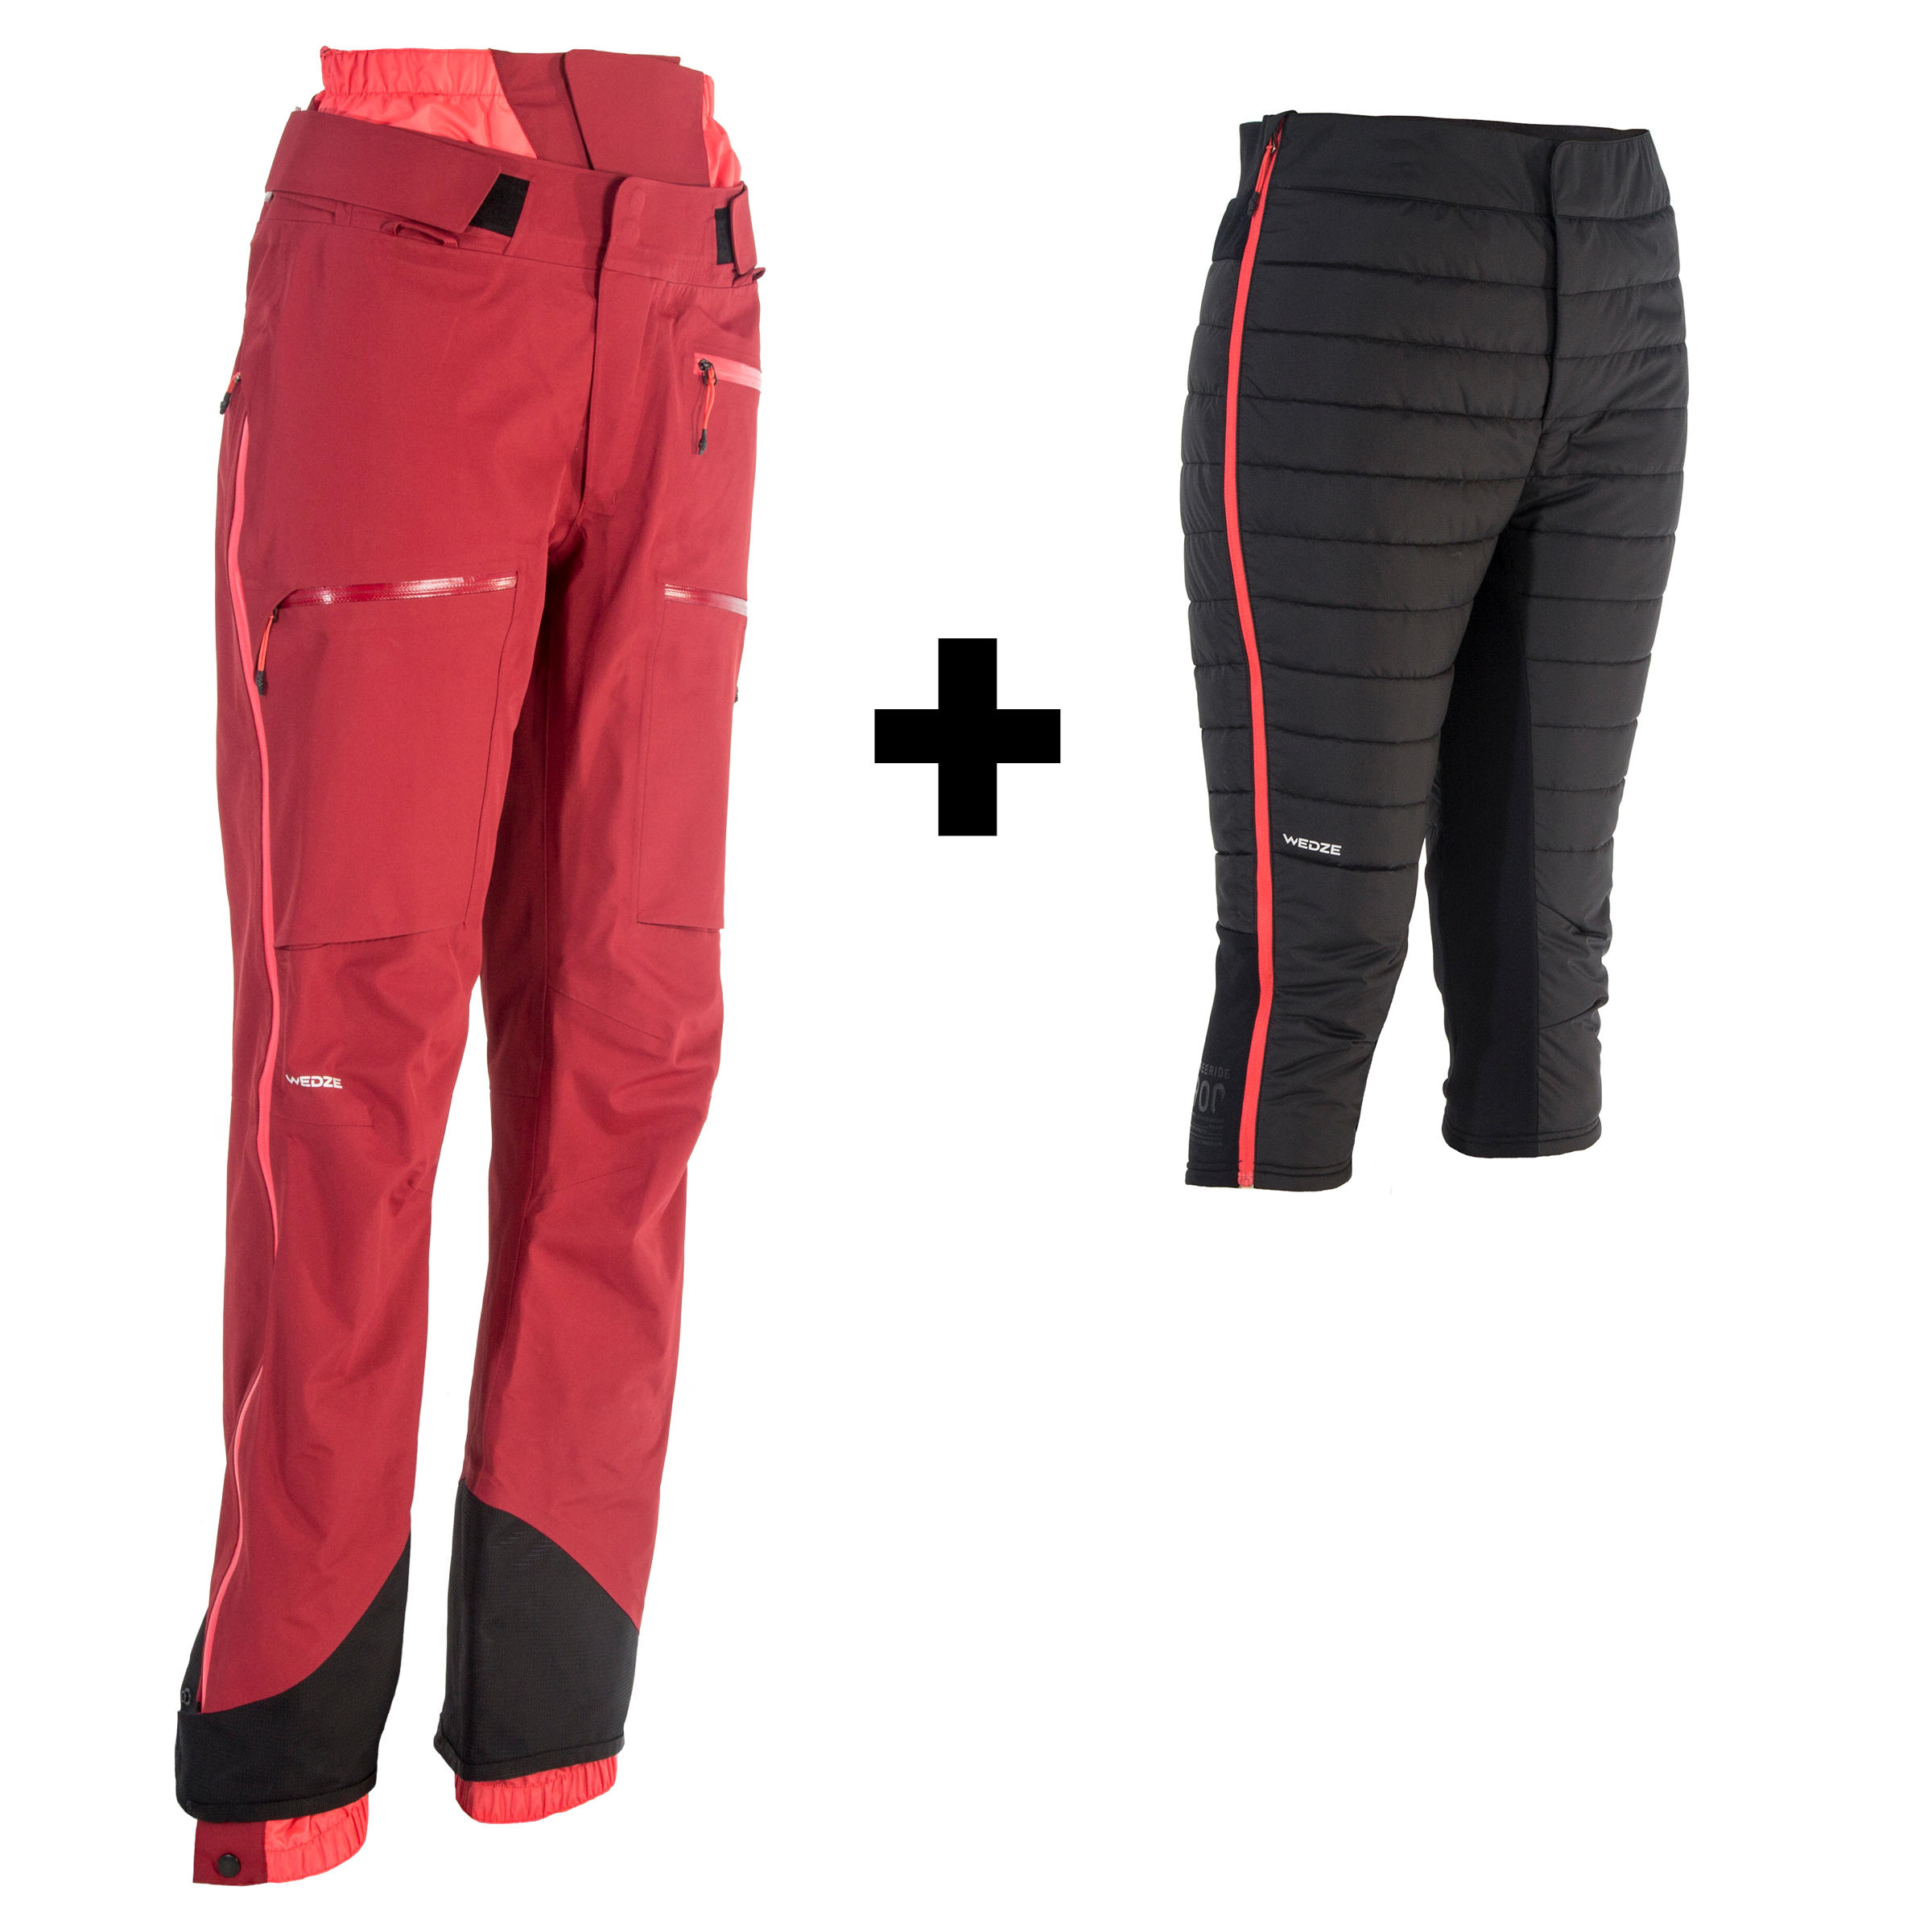 SFR 900 Women's Freeride Ski Pants - Burgundy